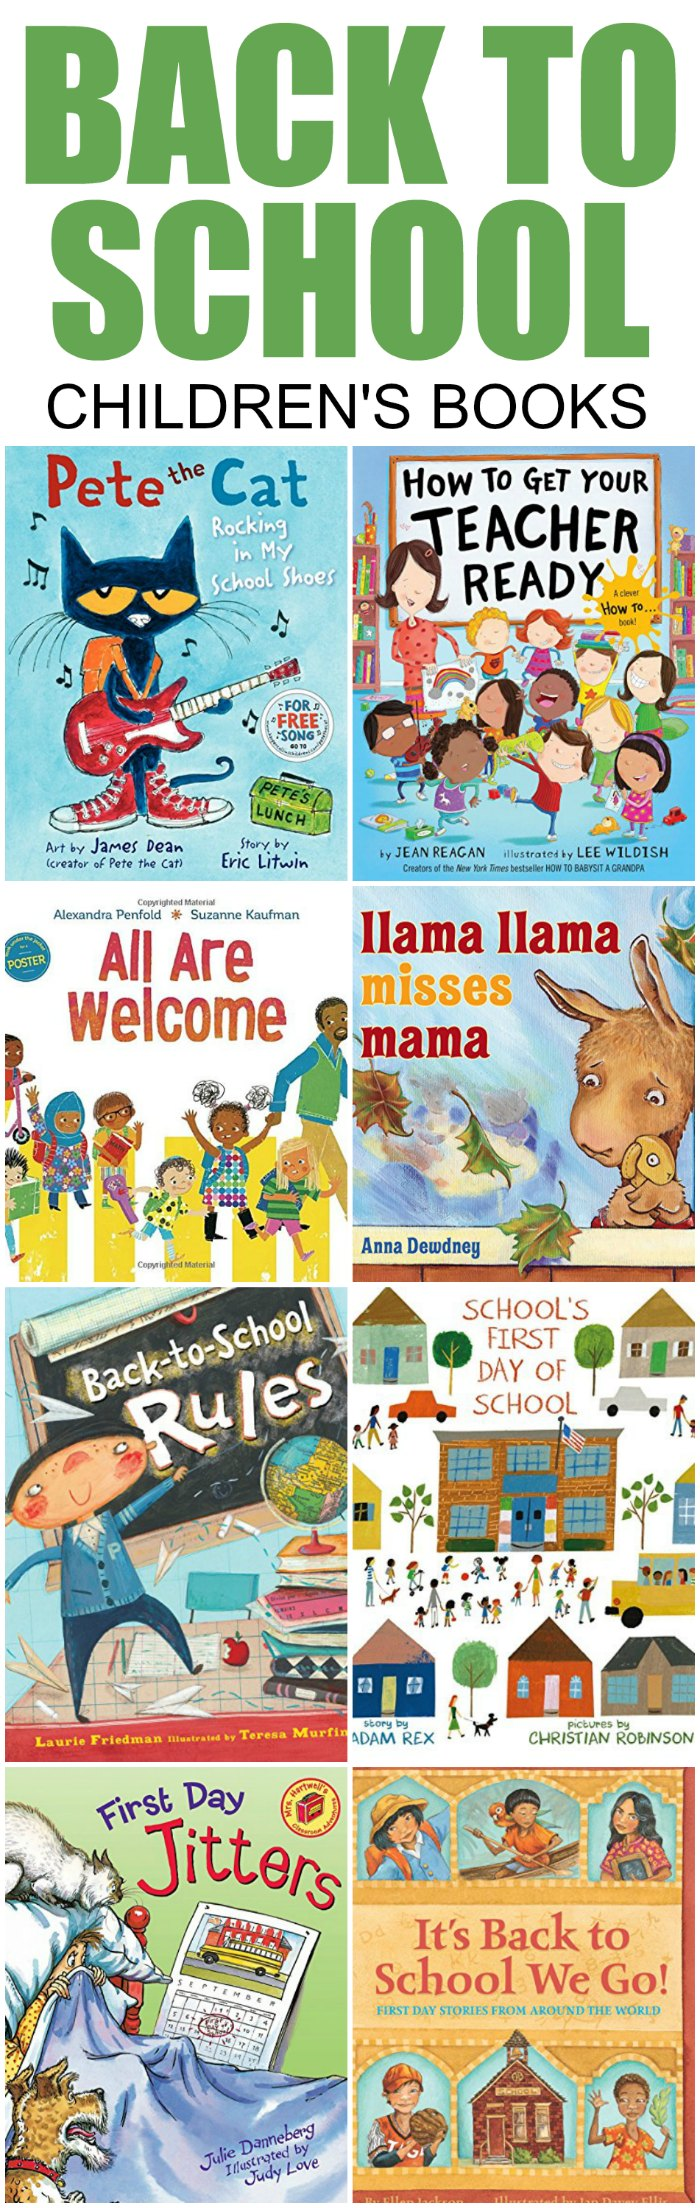 Back to School Books for Children | Mommy Evolution